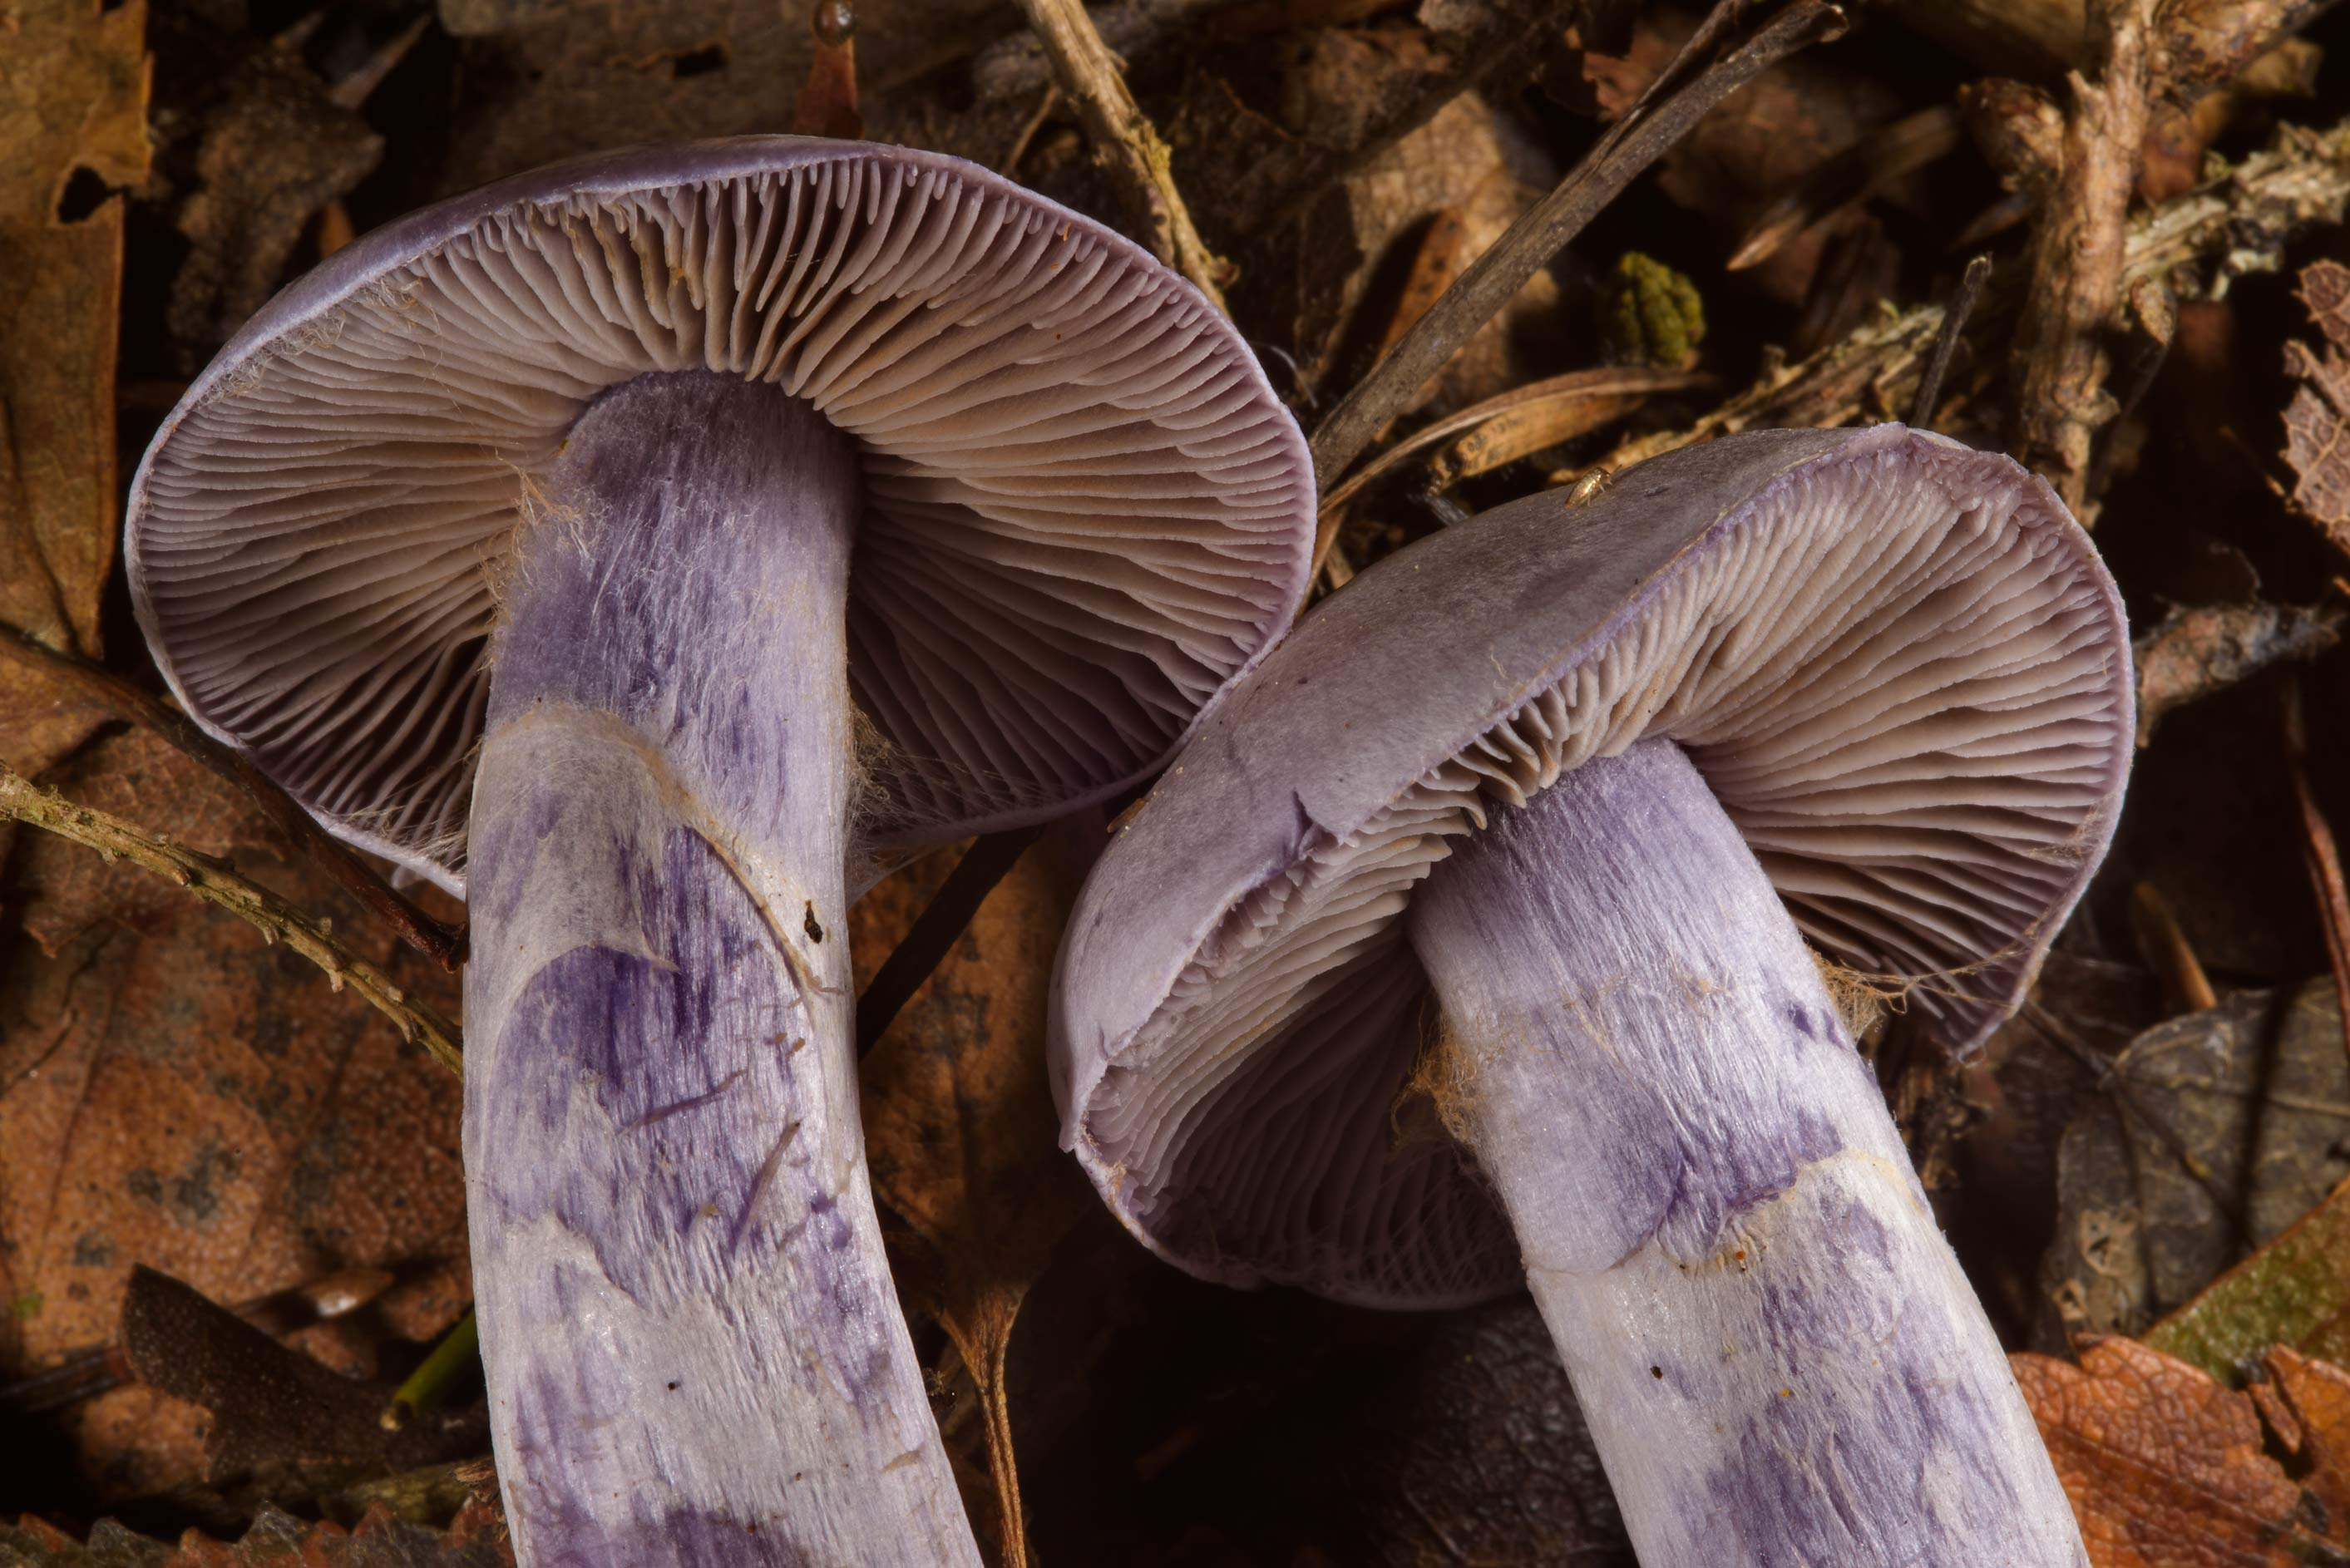 Some violet webcap mushrooms, may be Cortinarius...miles north from St.Petersburg. Russia